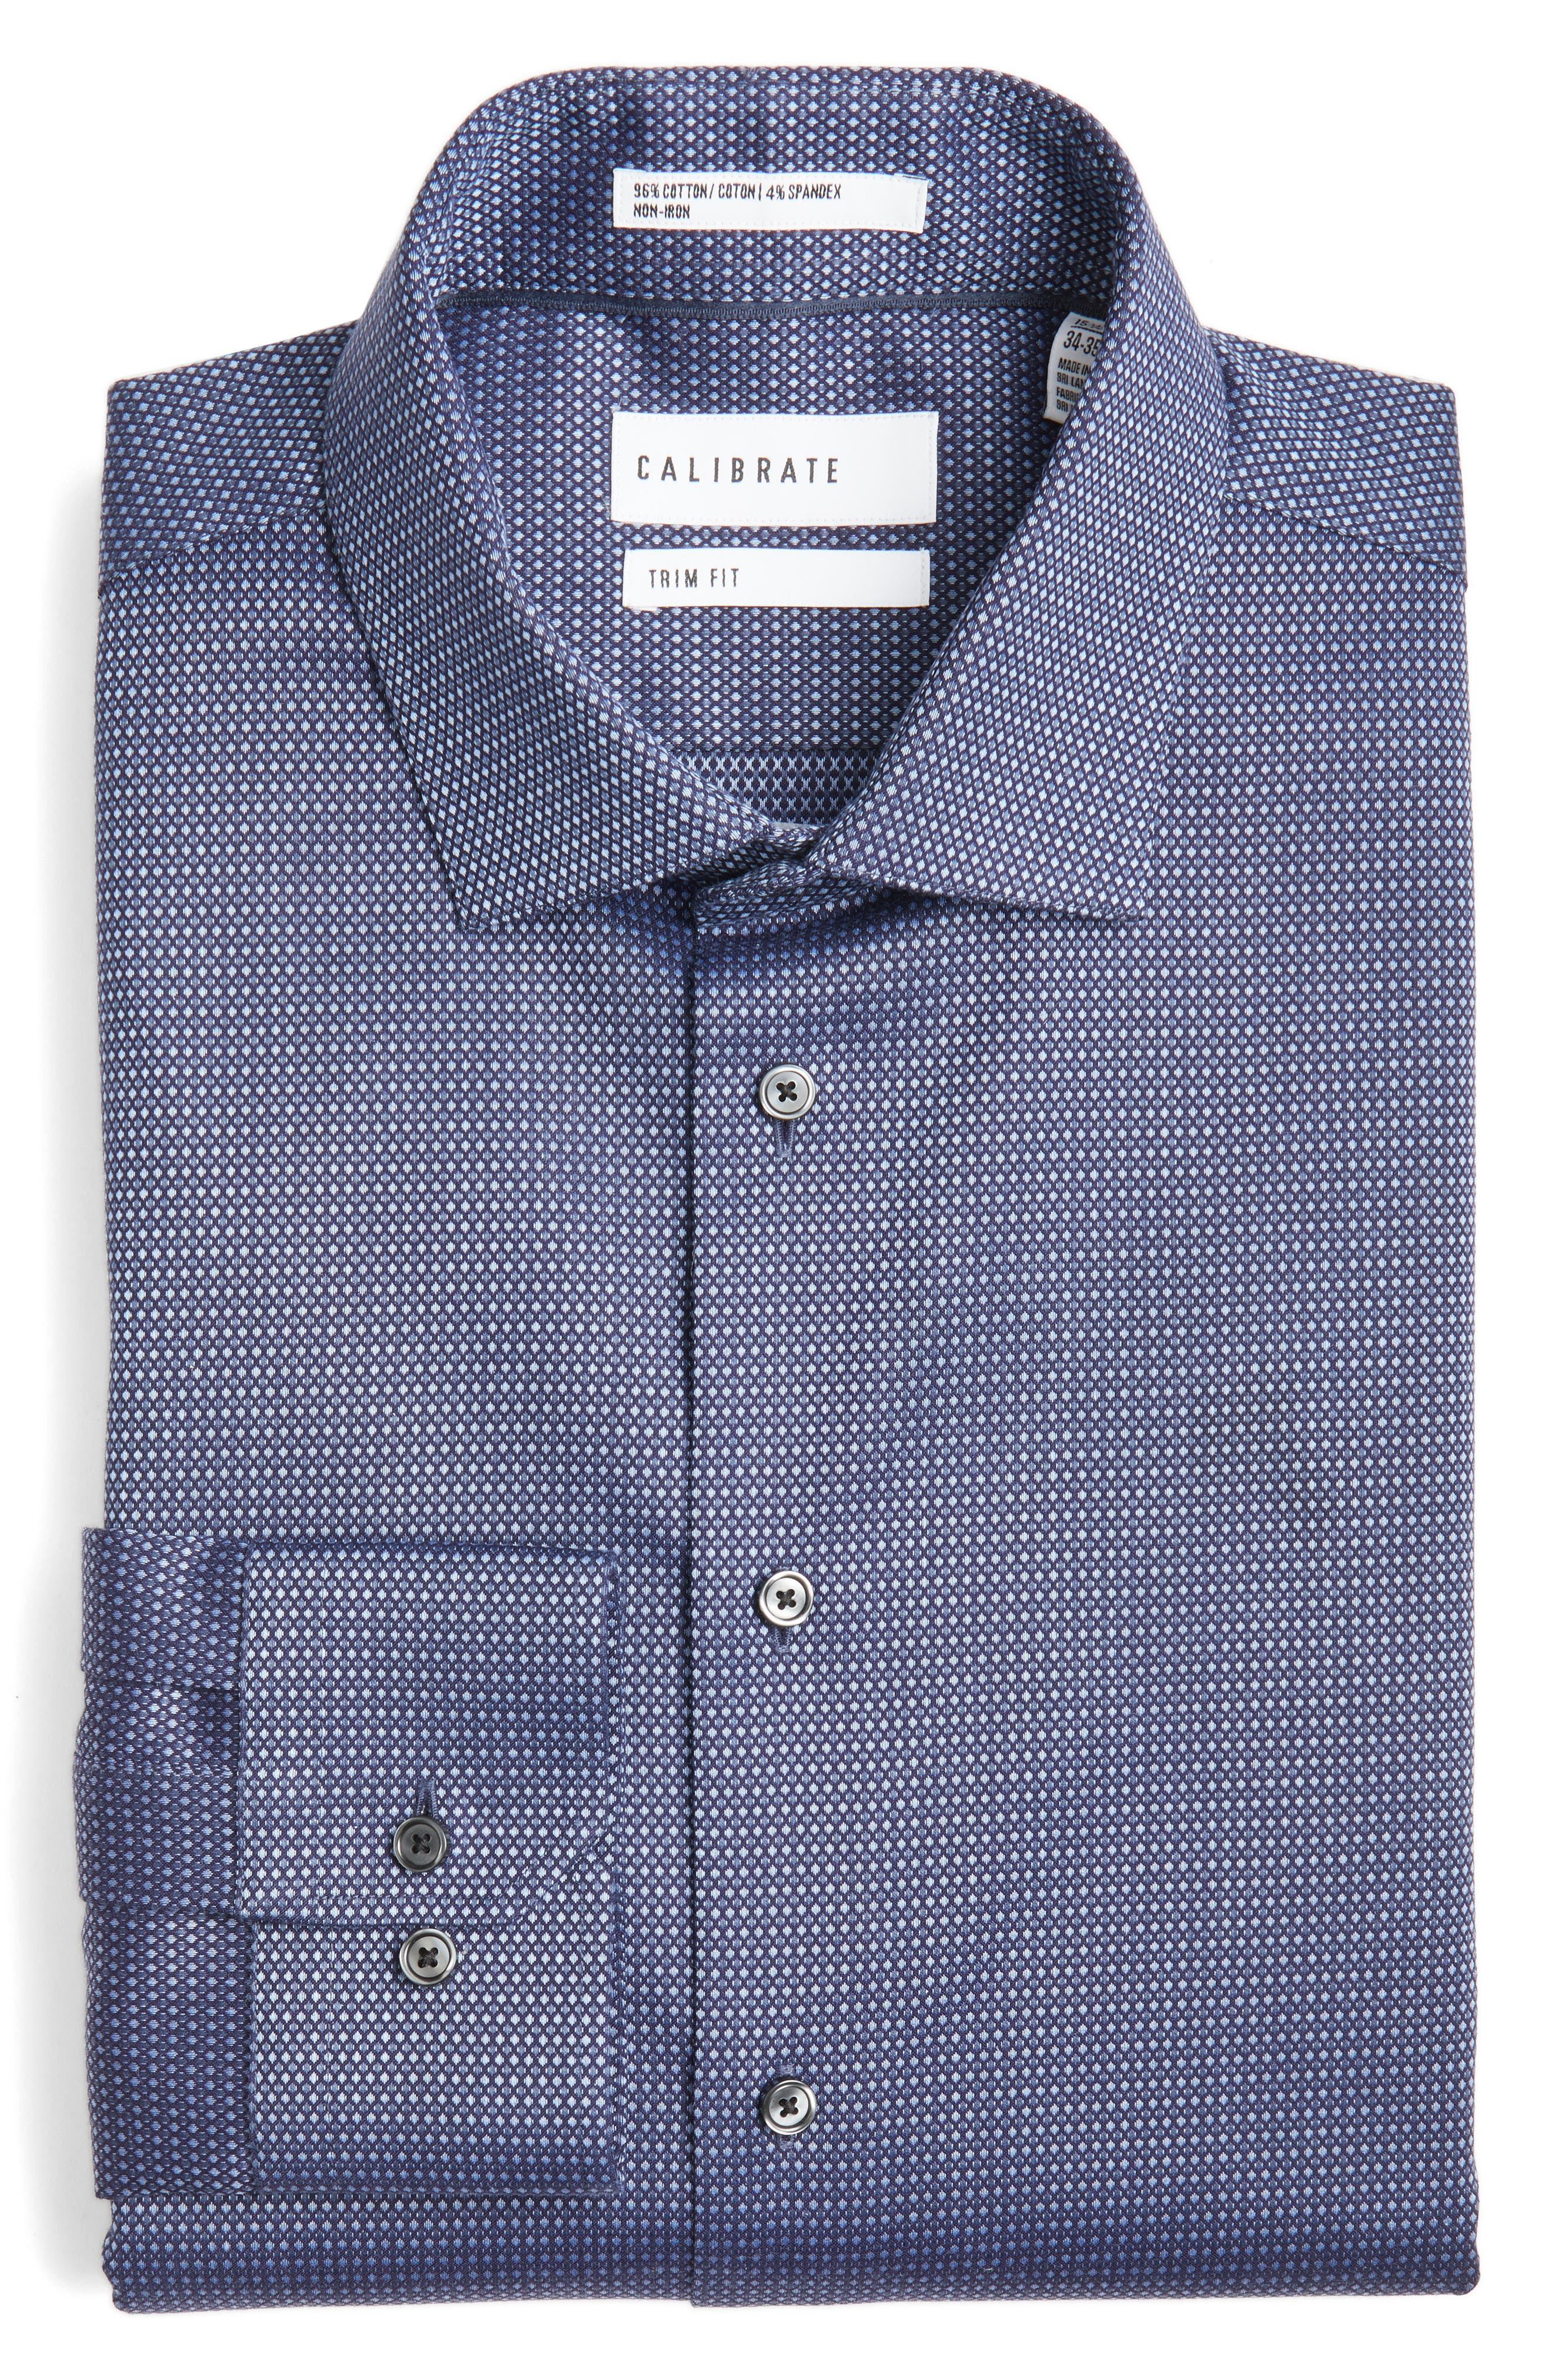 Alternate Image 1 Selected - Calibrate Trim Fit Non-Iron Stretch Dot Dress Shirt